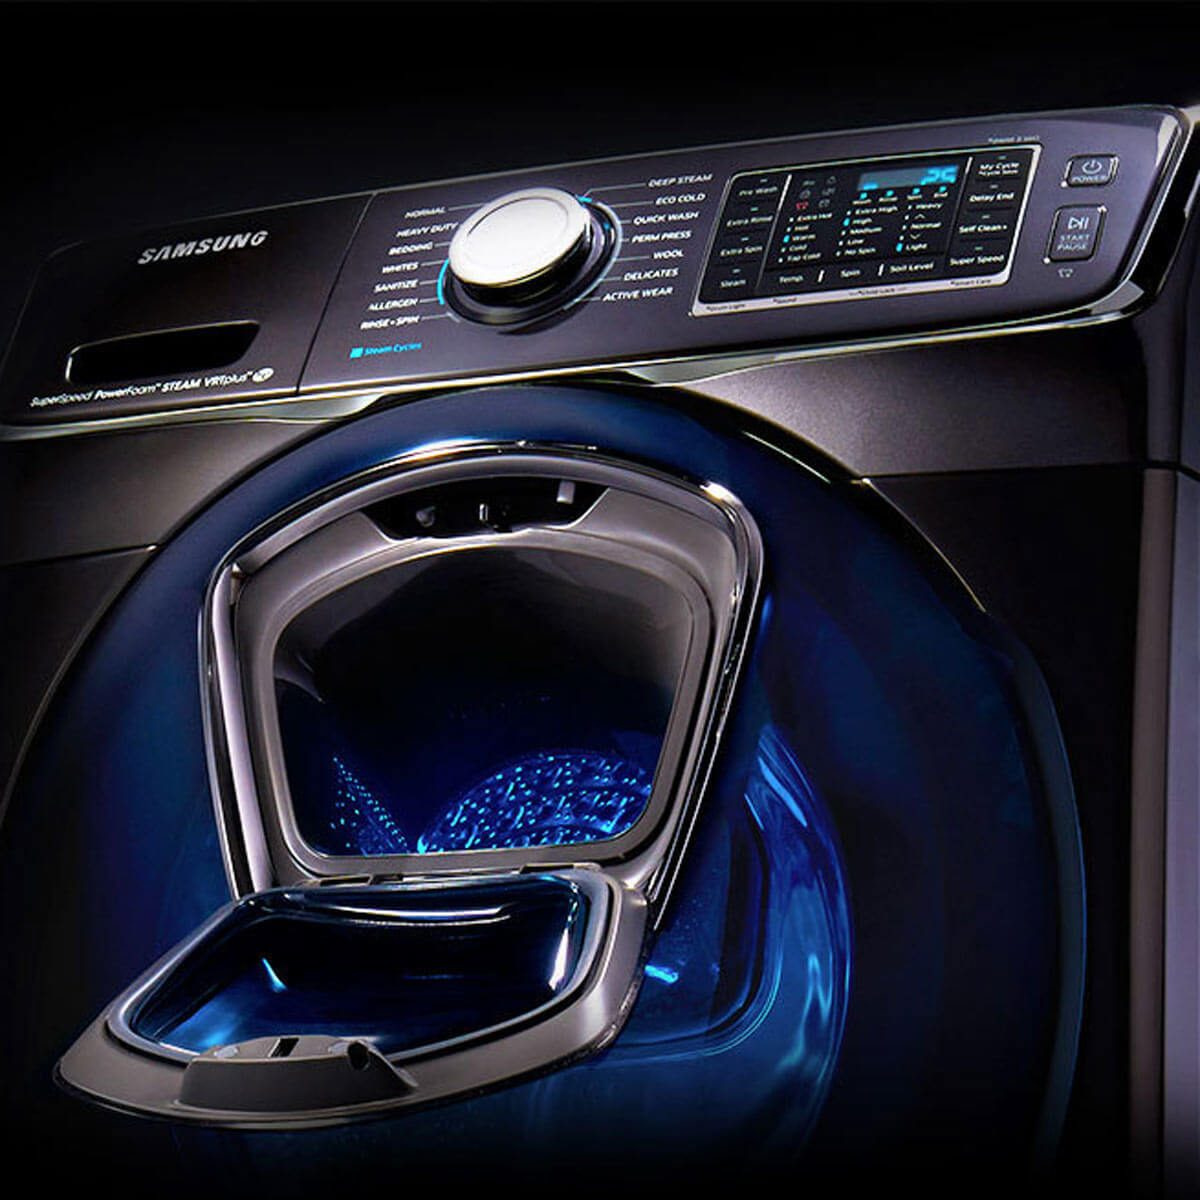 samsung washer laundry